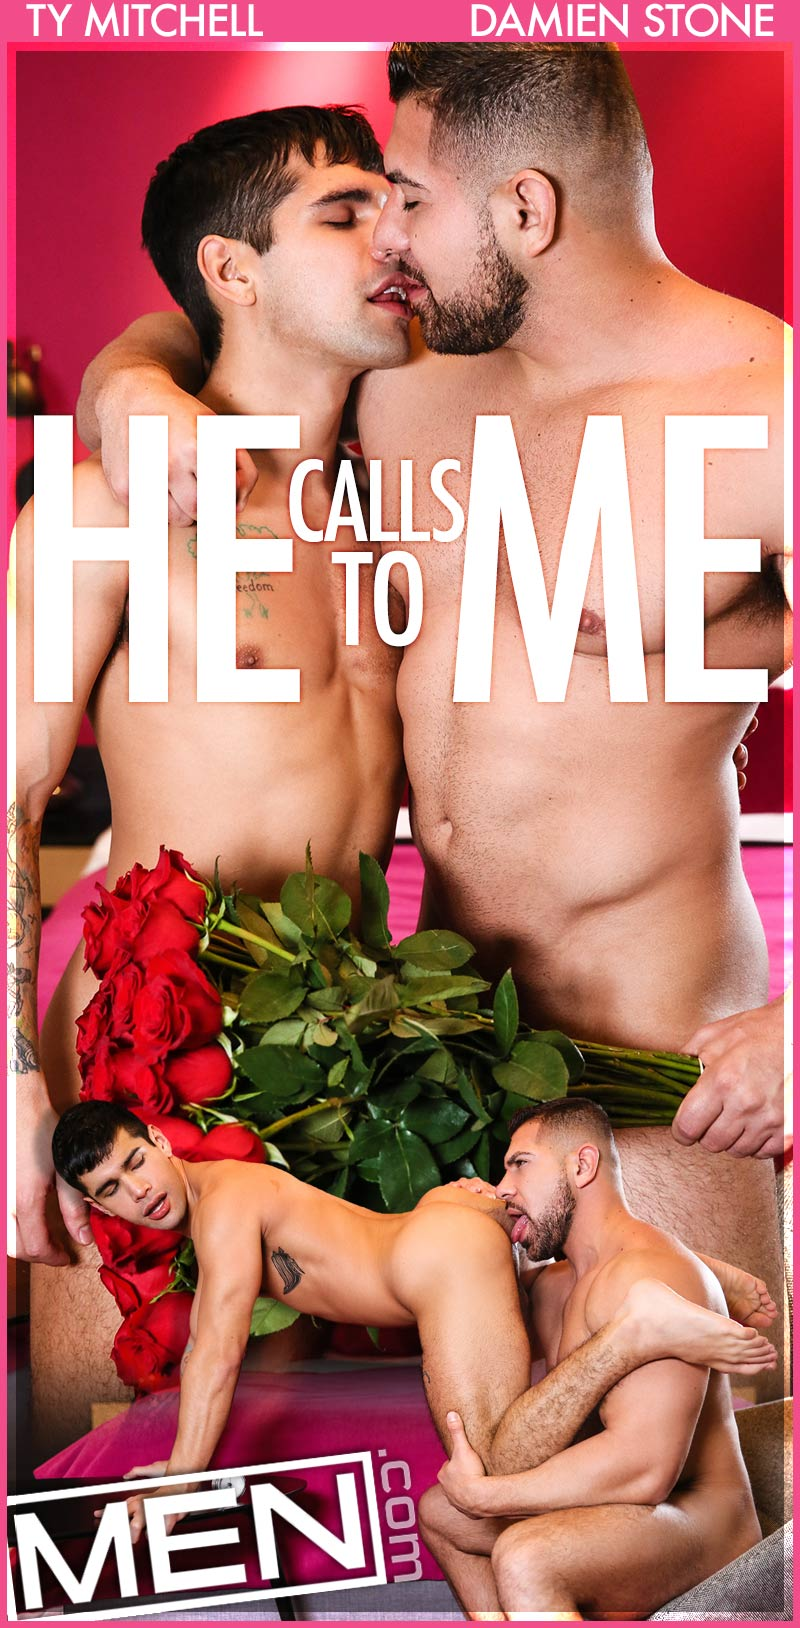 He Calls To Me (Damien Stone Fucks Ty Mitchell) at MEN